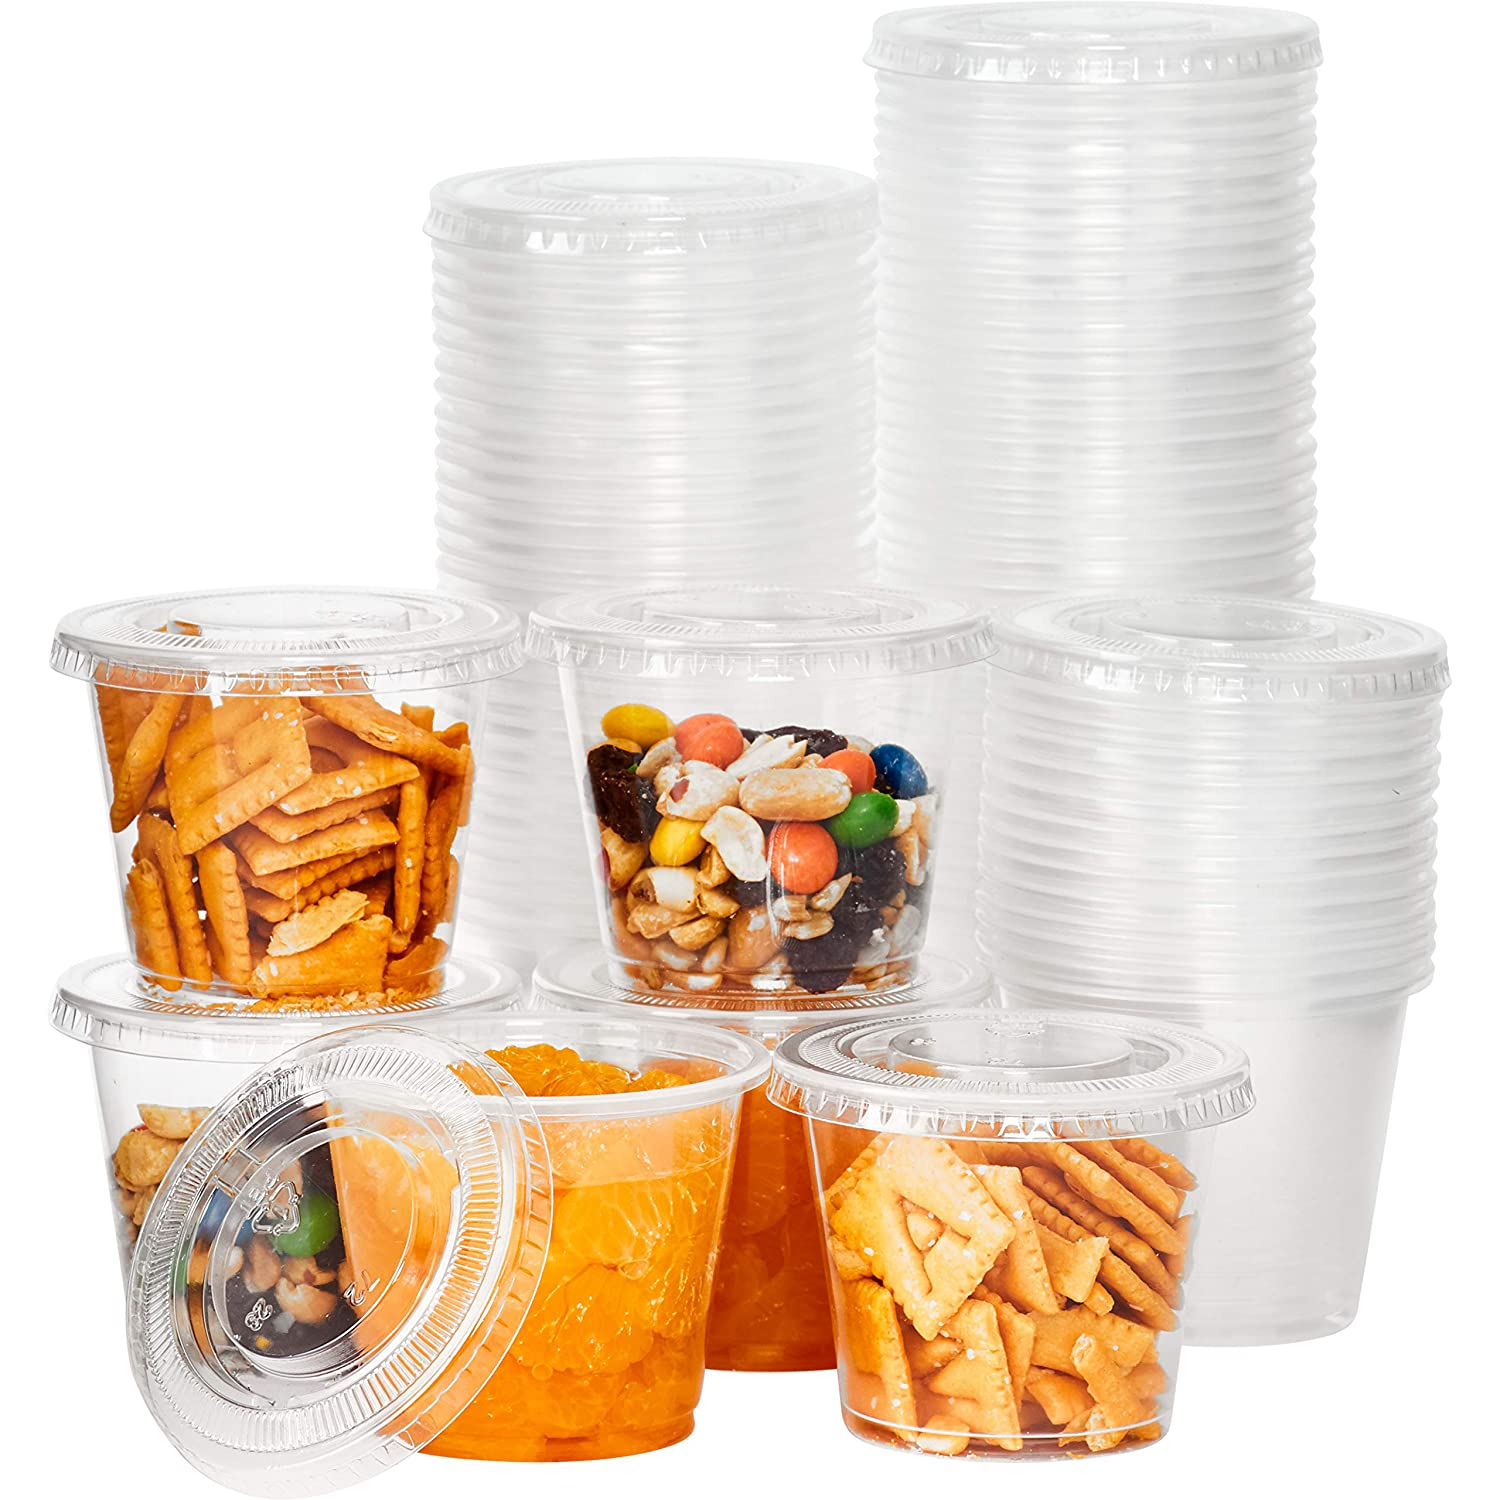 Leakproof, BPA Free 5.5oz Souffle Cups and Lids 100ct. Stackable Portion Containers for Sampling, Salad Dressing, Sauces or Jello Shots. Plastic Food Prep Supplies for Restaurant, Catering or Deli